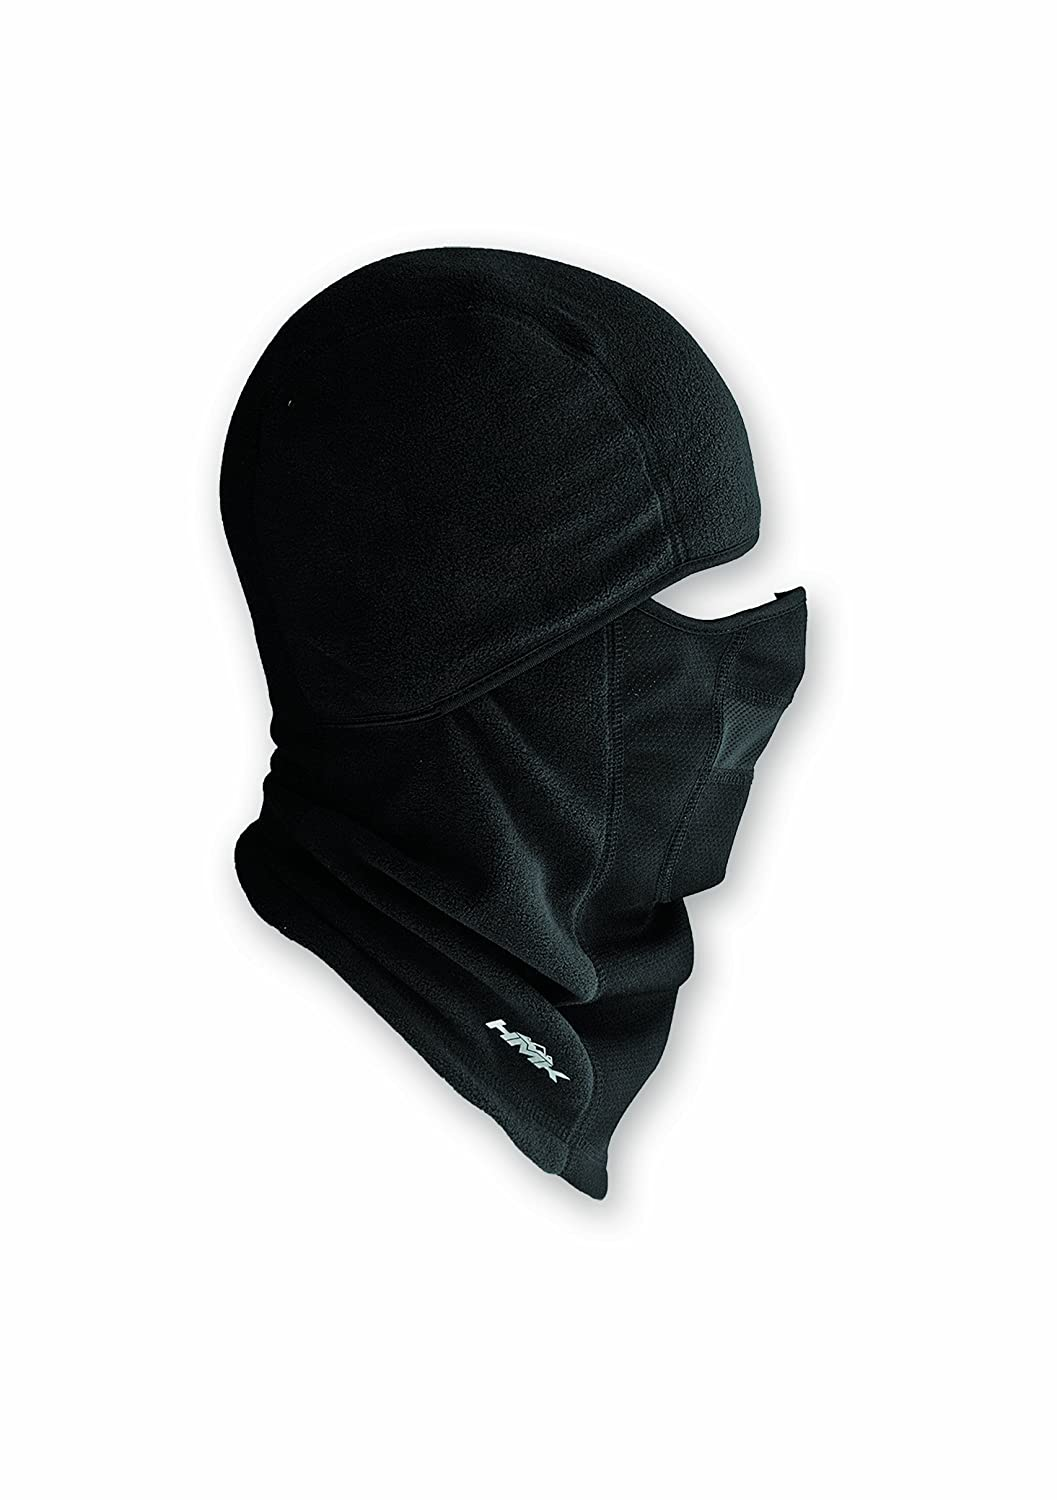 HMK Exposure Balaclava (Black, X-Large) HM5EXPOSUREXL